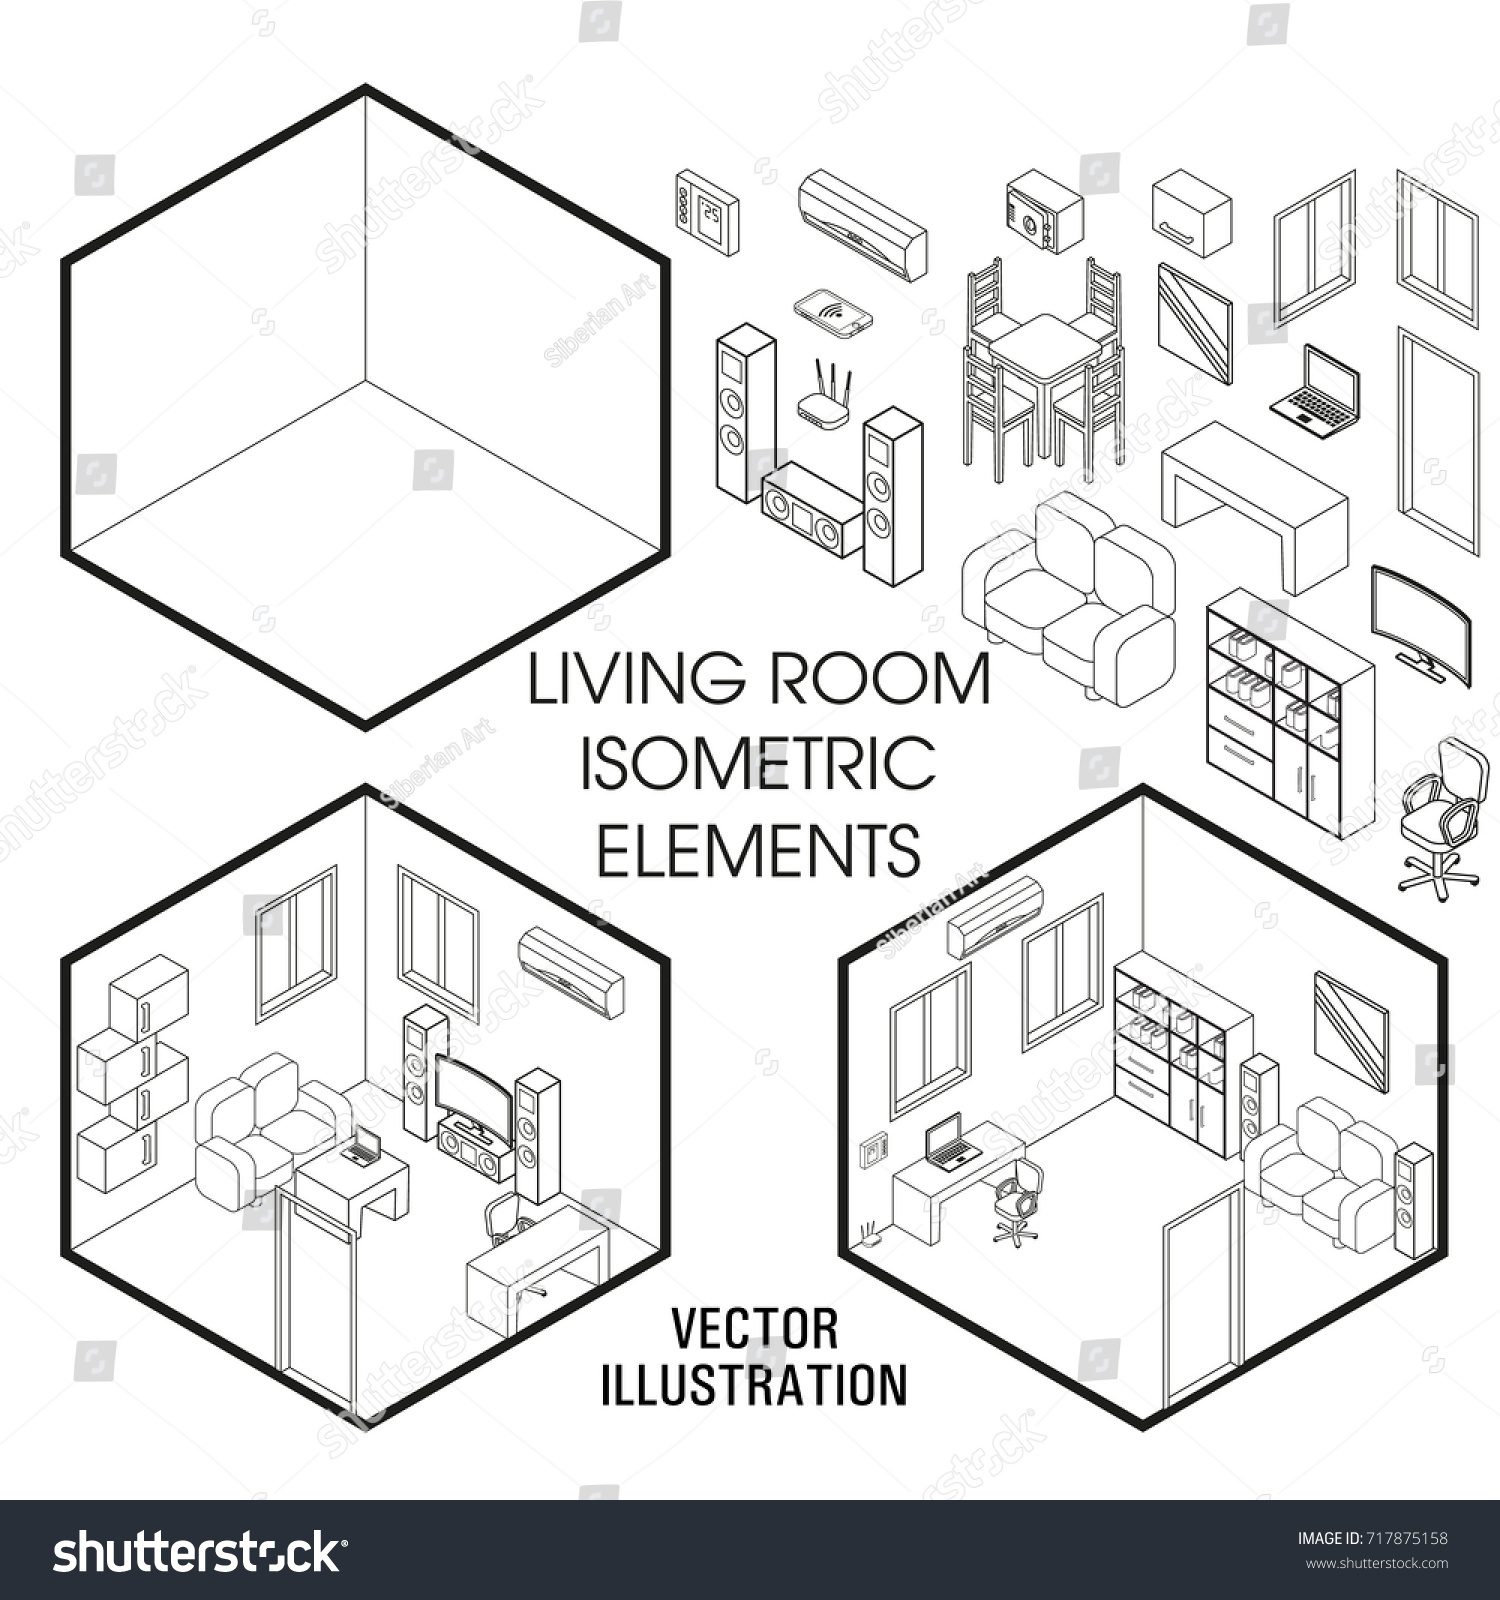 Vector Of Living Room Stock Vector Image Of Sofa: Isometric Living Room Interior Constructor Vector Stock